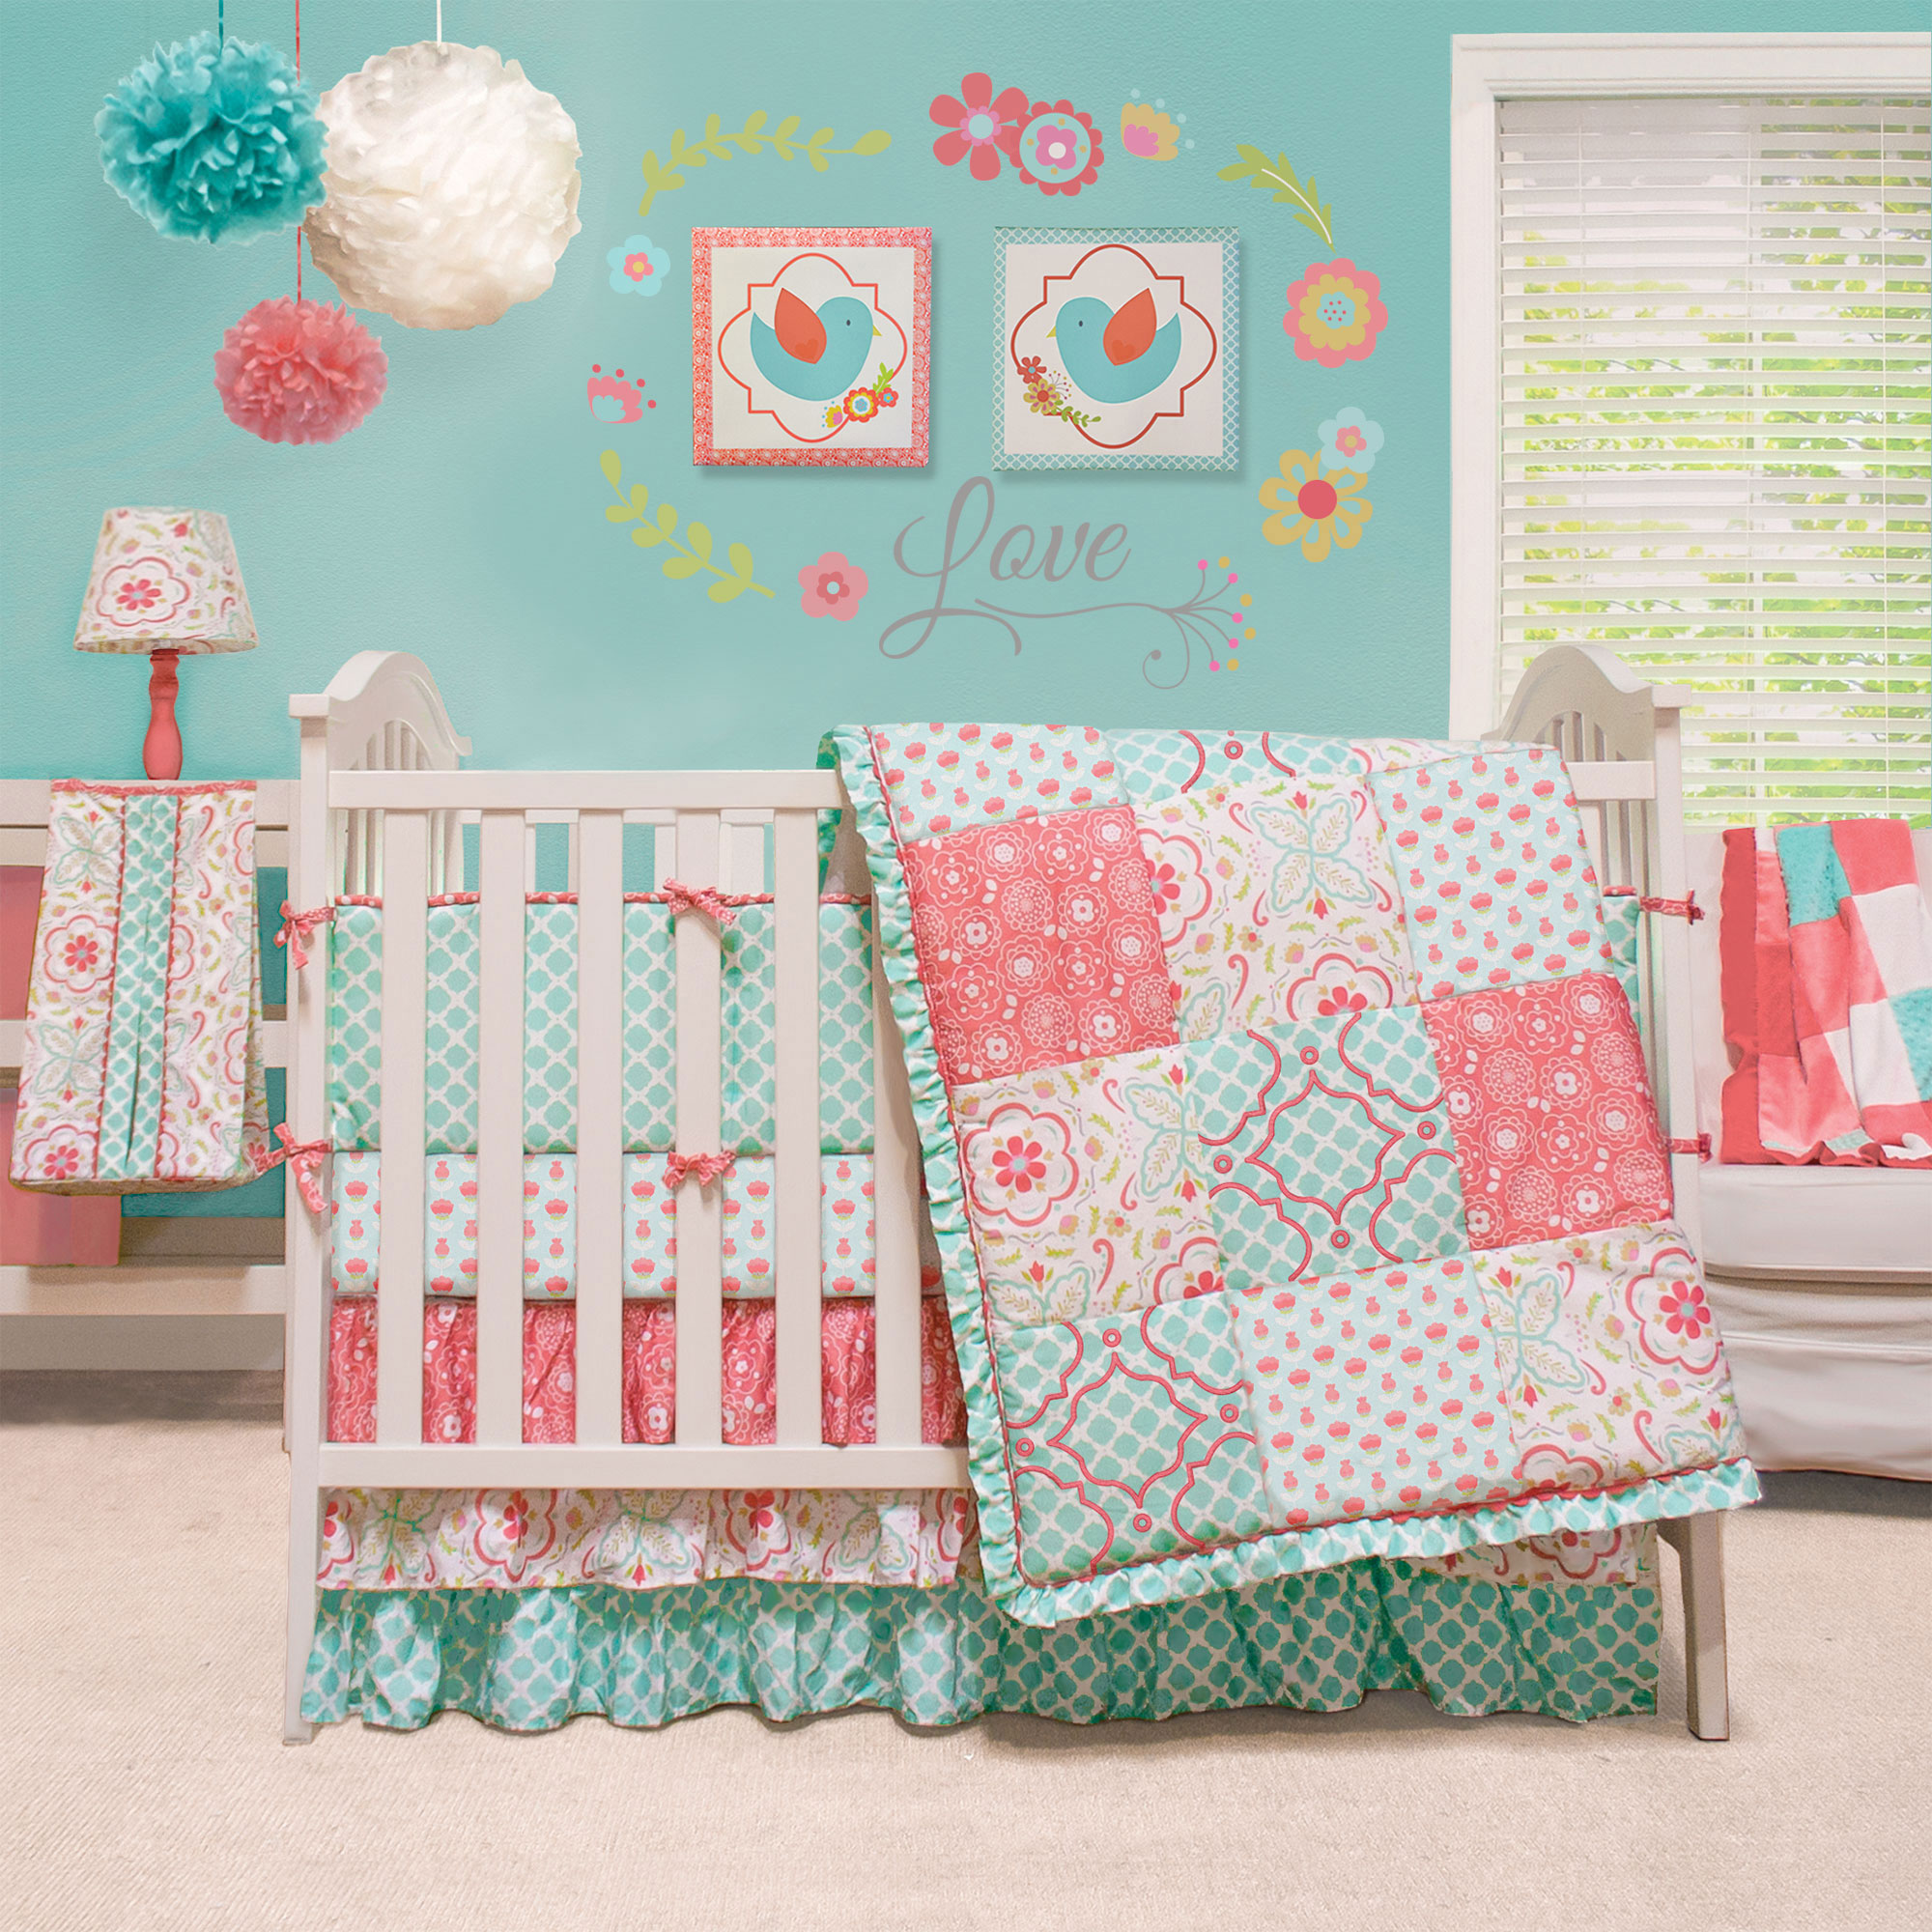 mila coral&blue floral patchwork baby girl crib bedding 4